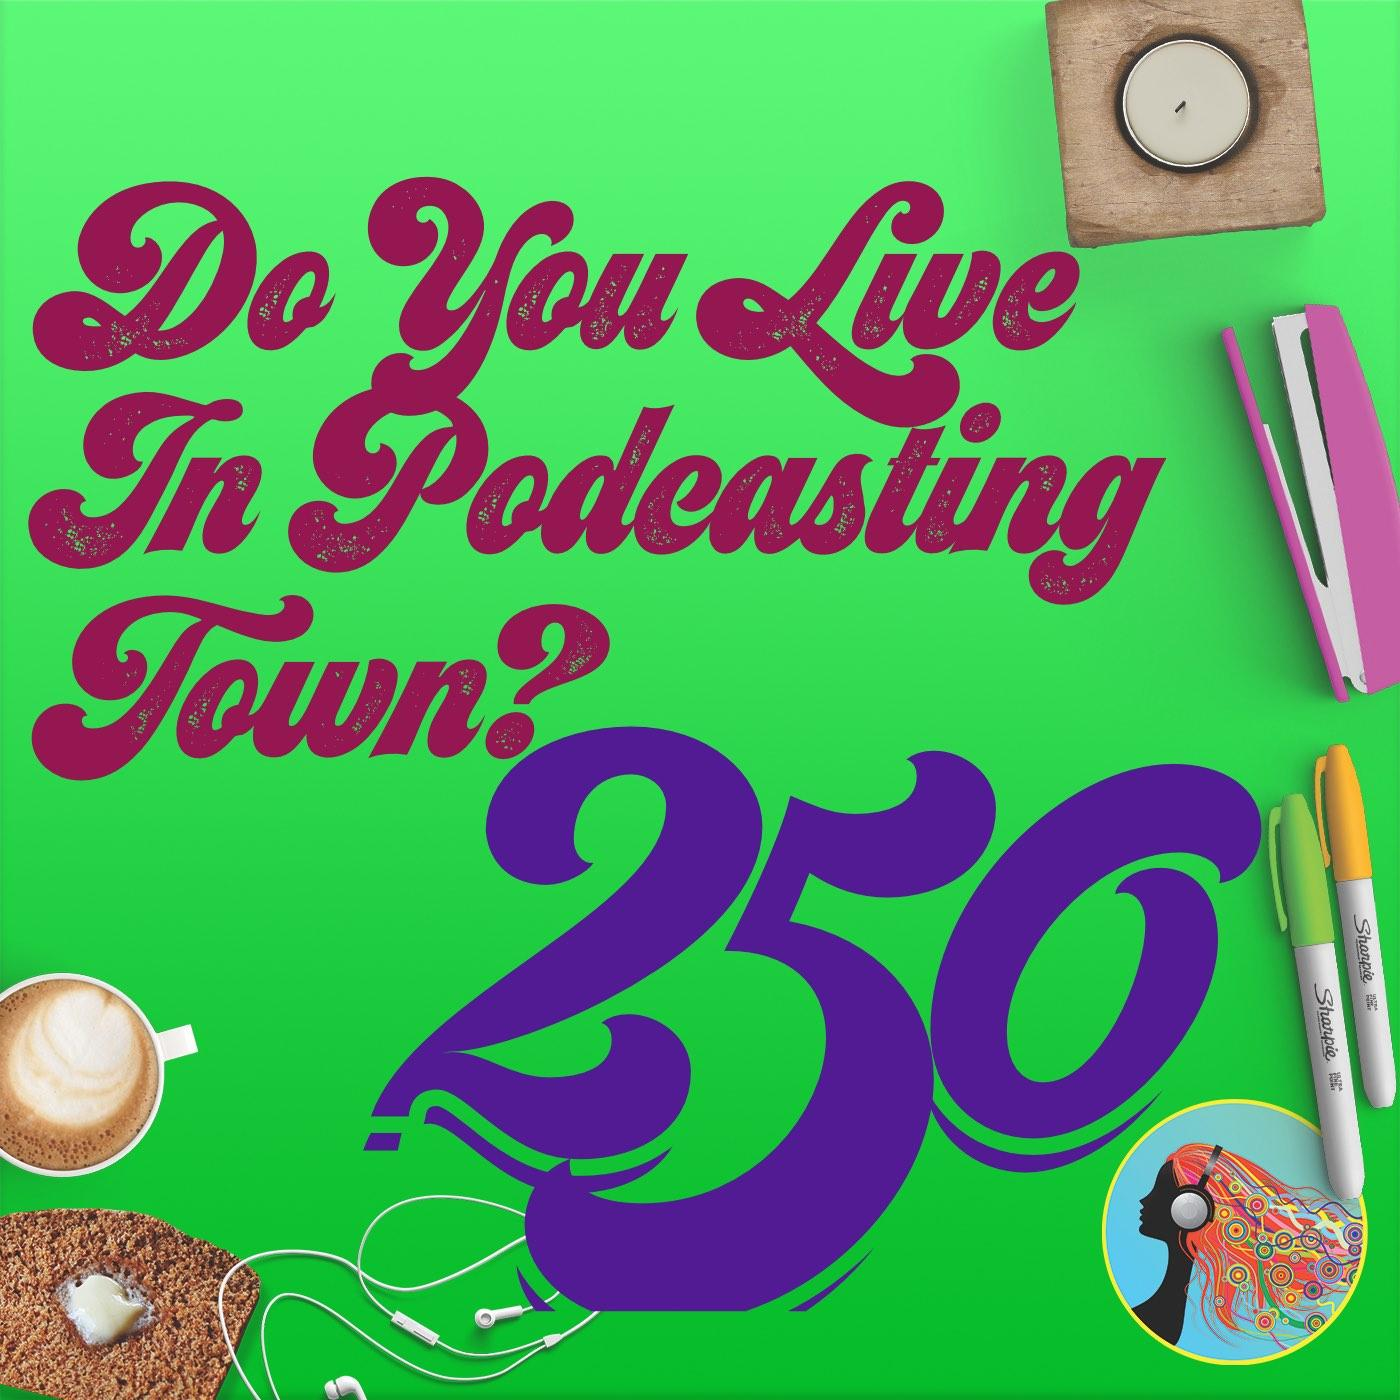 250 Do You Live In Podcasting Town?